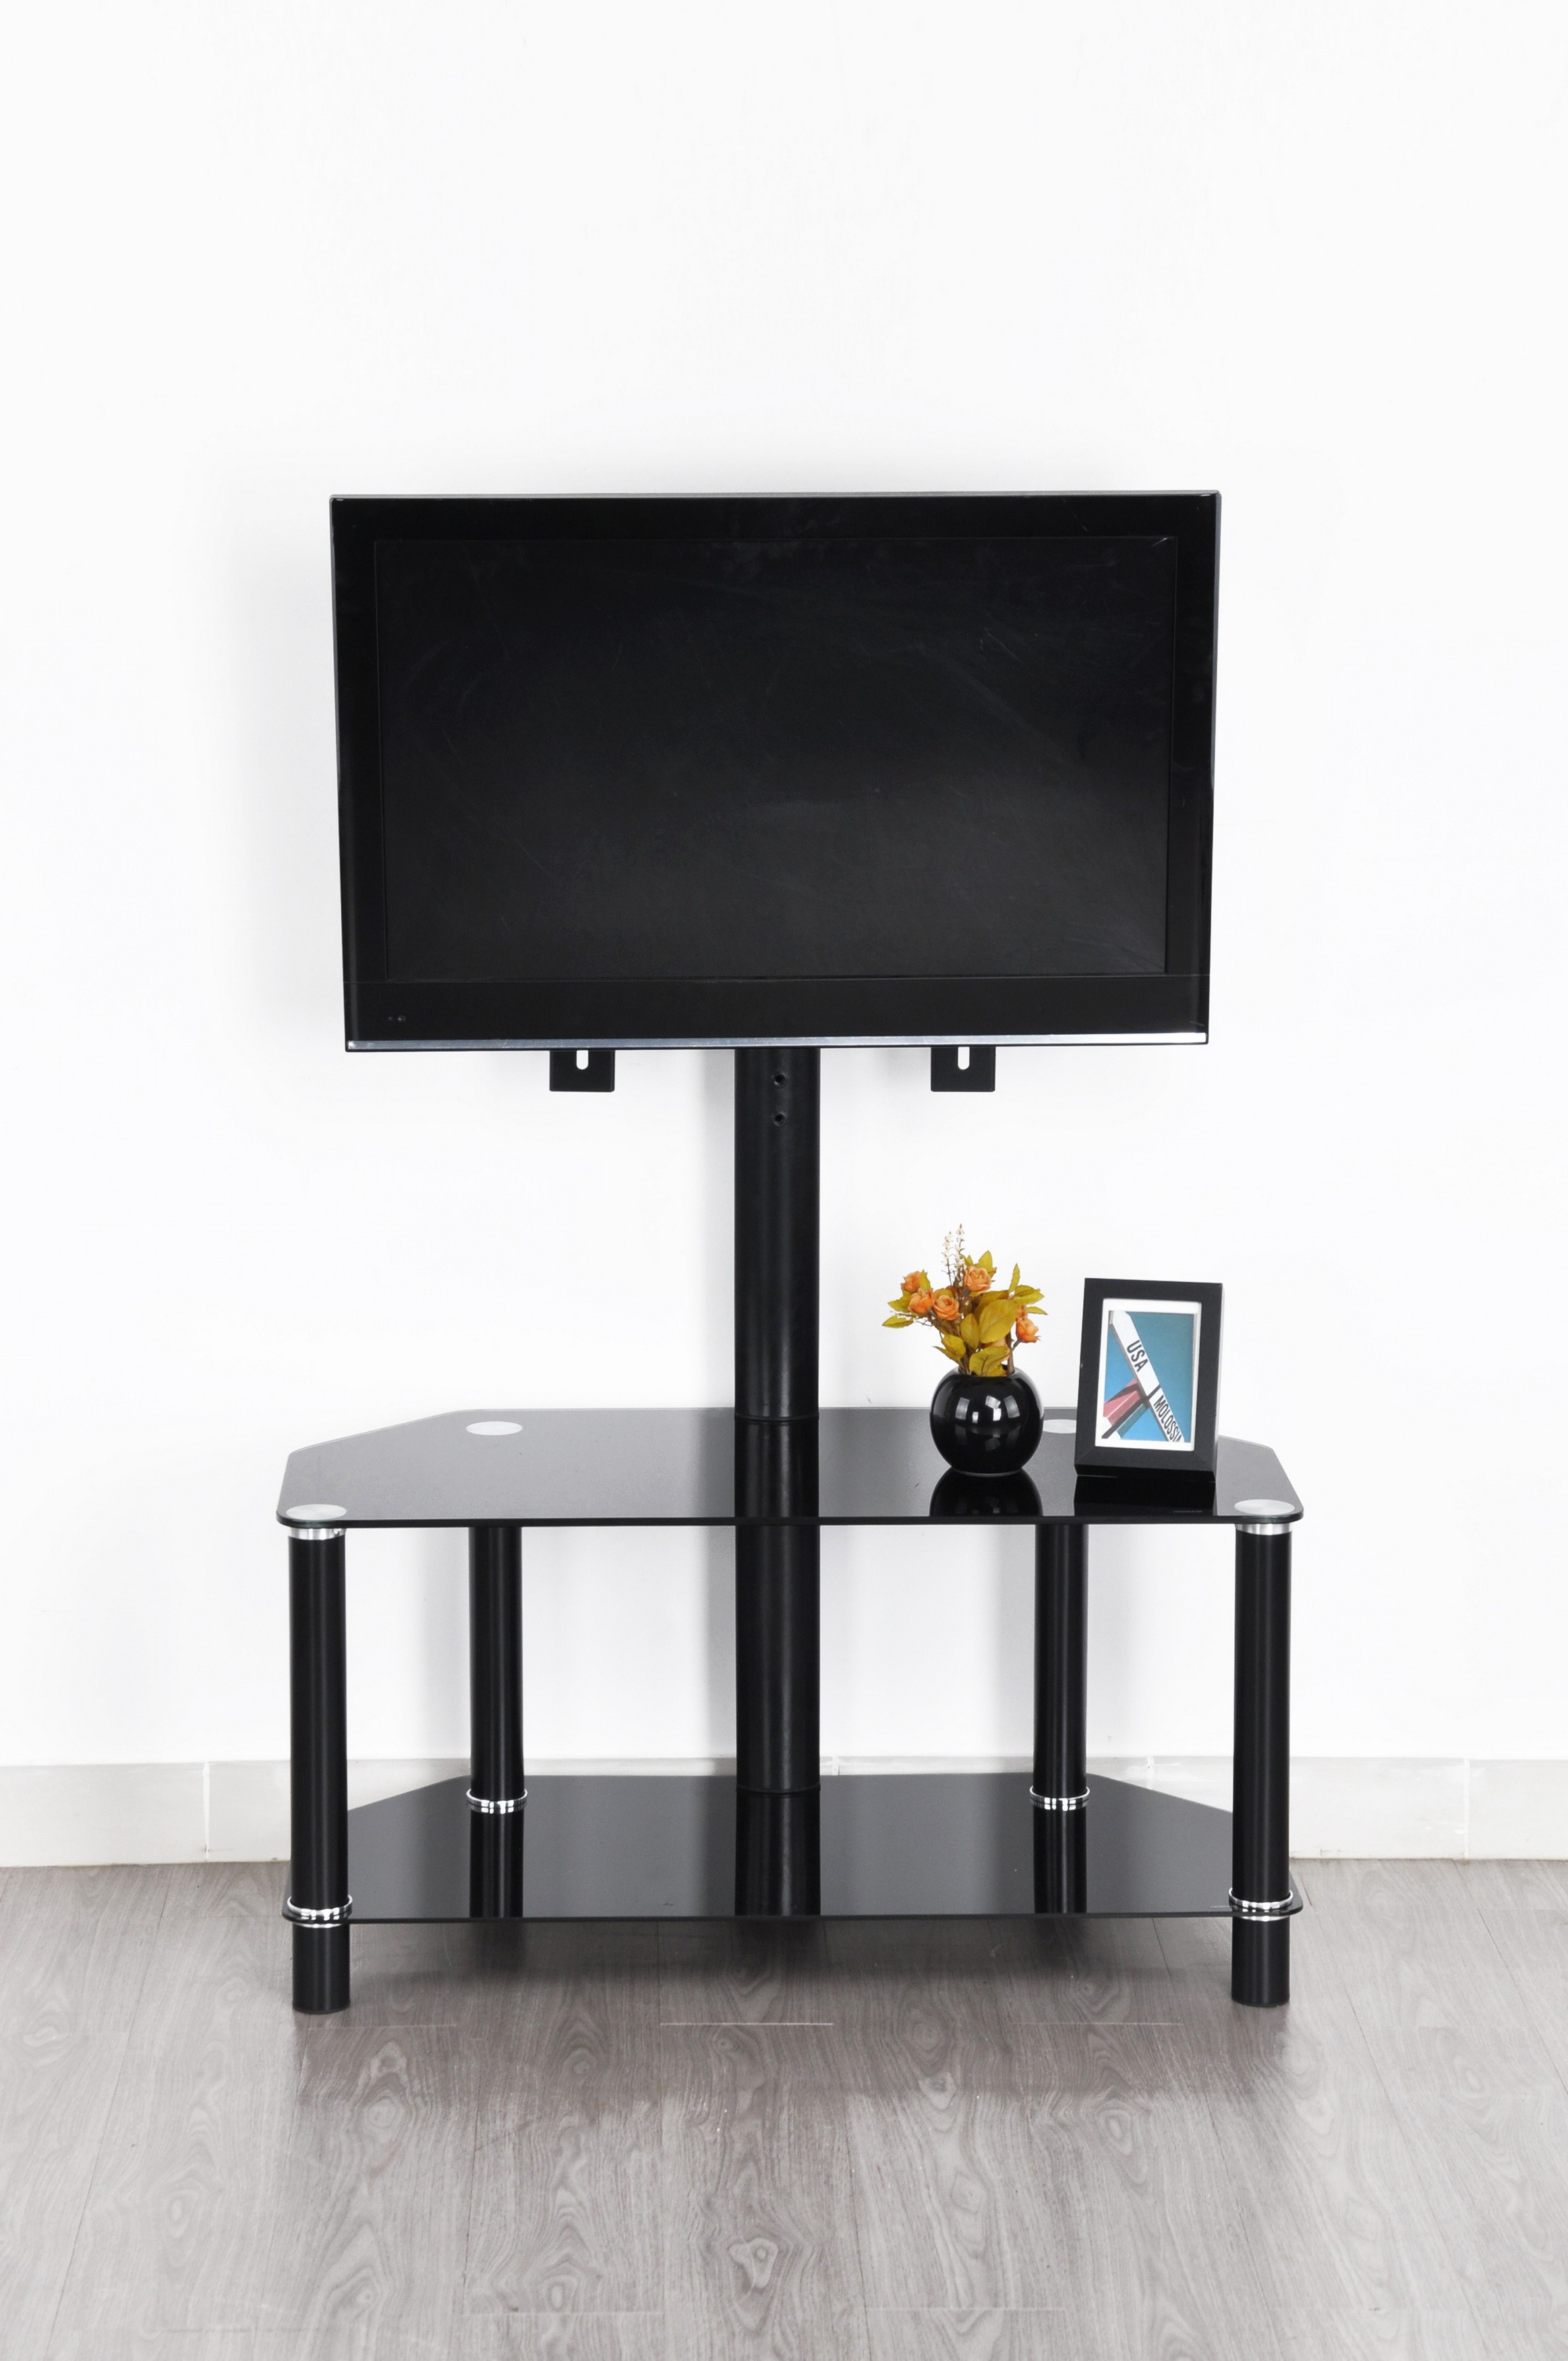 Meuble Tv Esing Noir 2 Plateau 1 Support Tv Prix Discount Design # Meuble Tv Support Integre